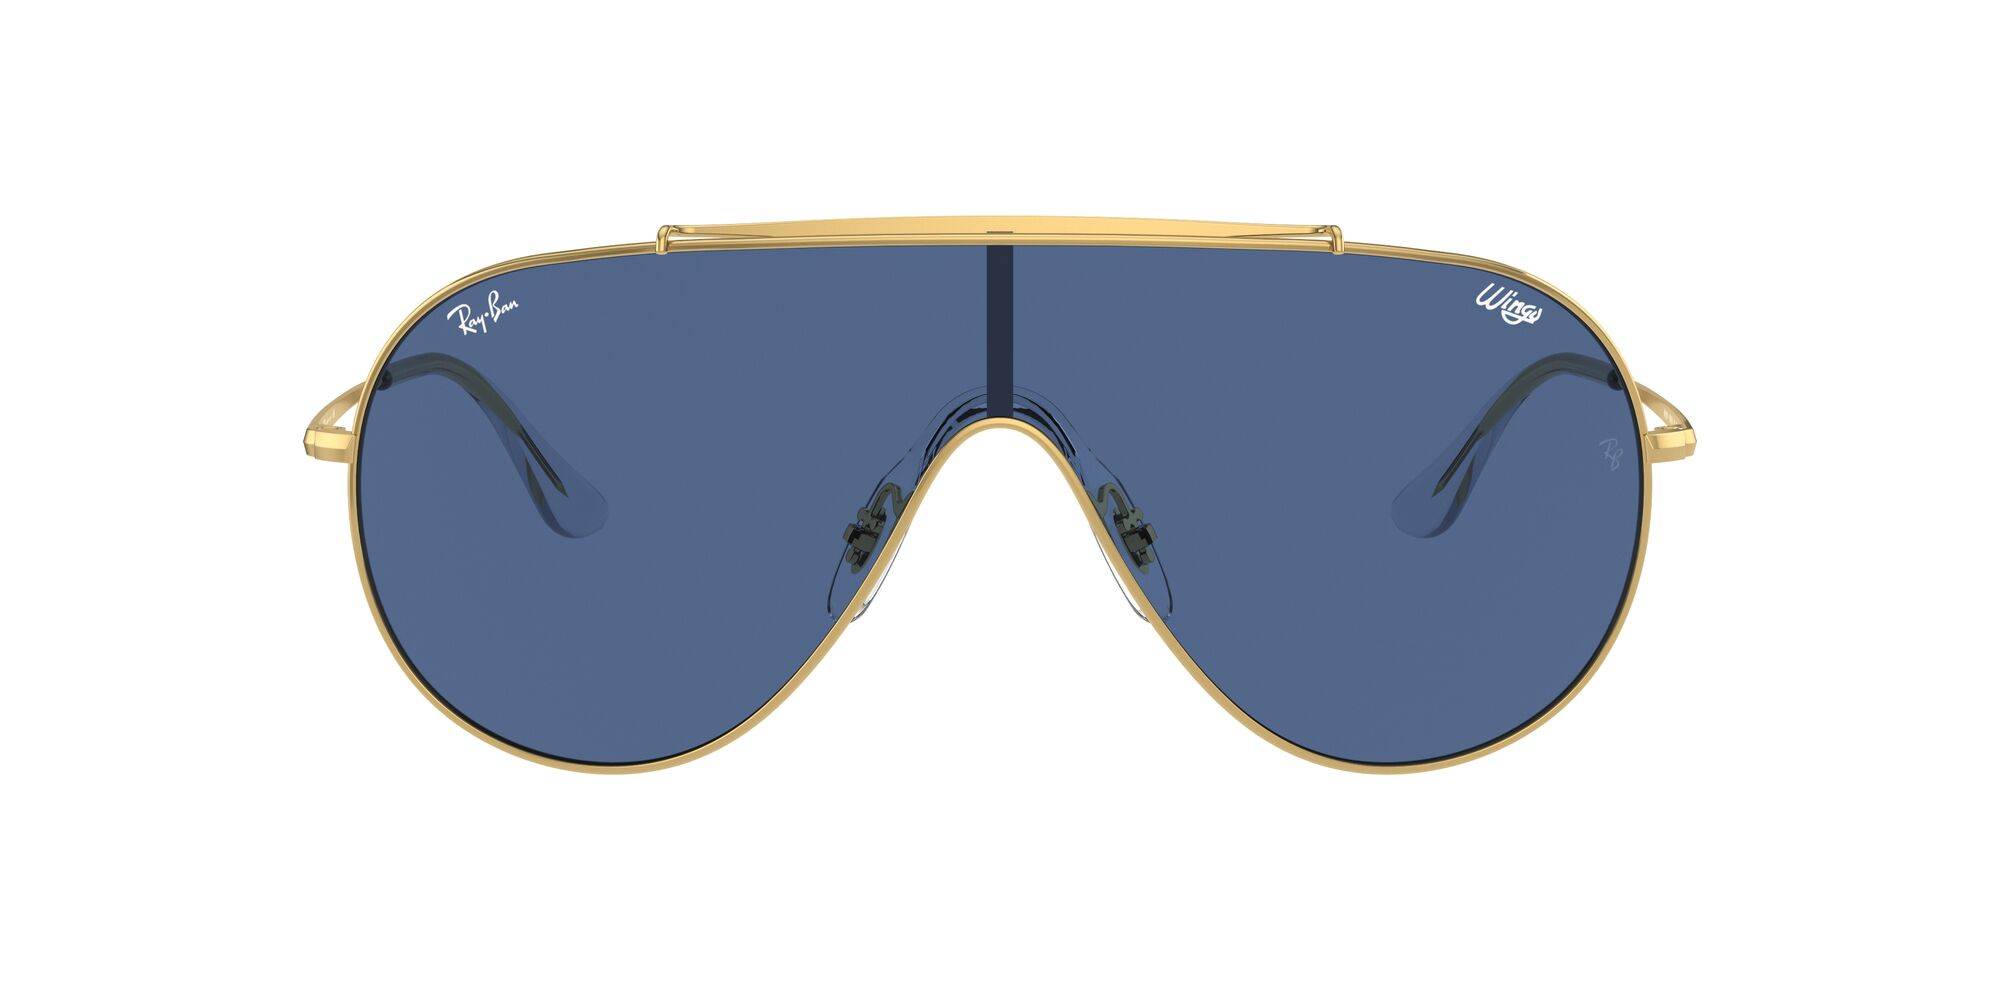 Front Ray-Ban Ray-Ban 0RB3597 905080 0/0 Goud/Blauw